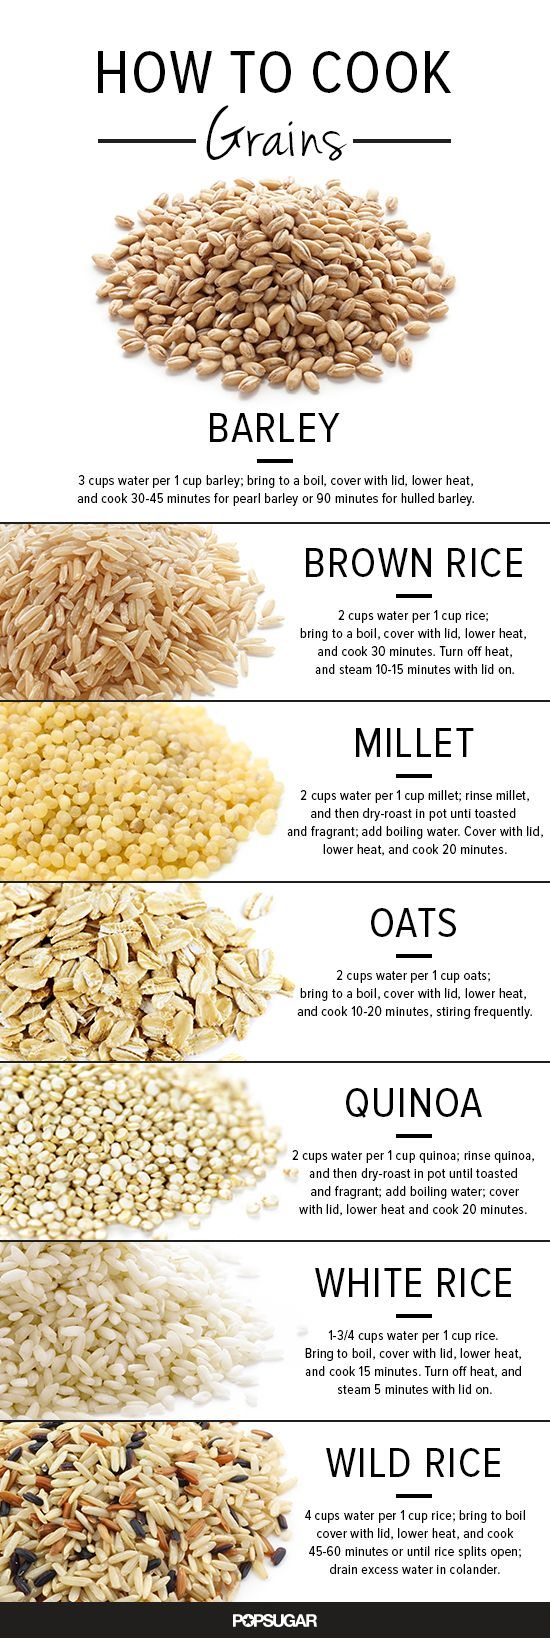 HEALTHY FOOD -         A handy guide to cooking grains...